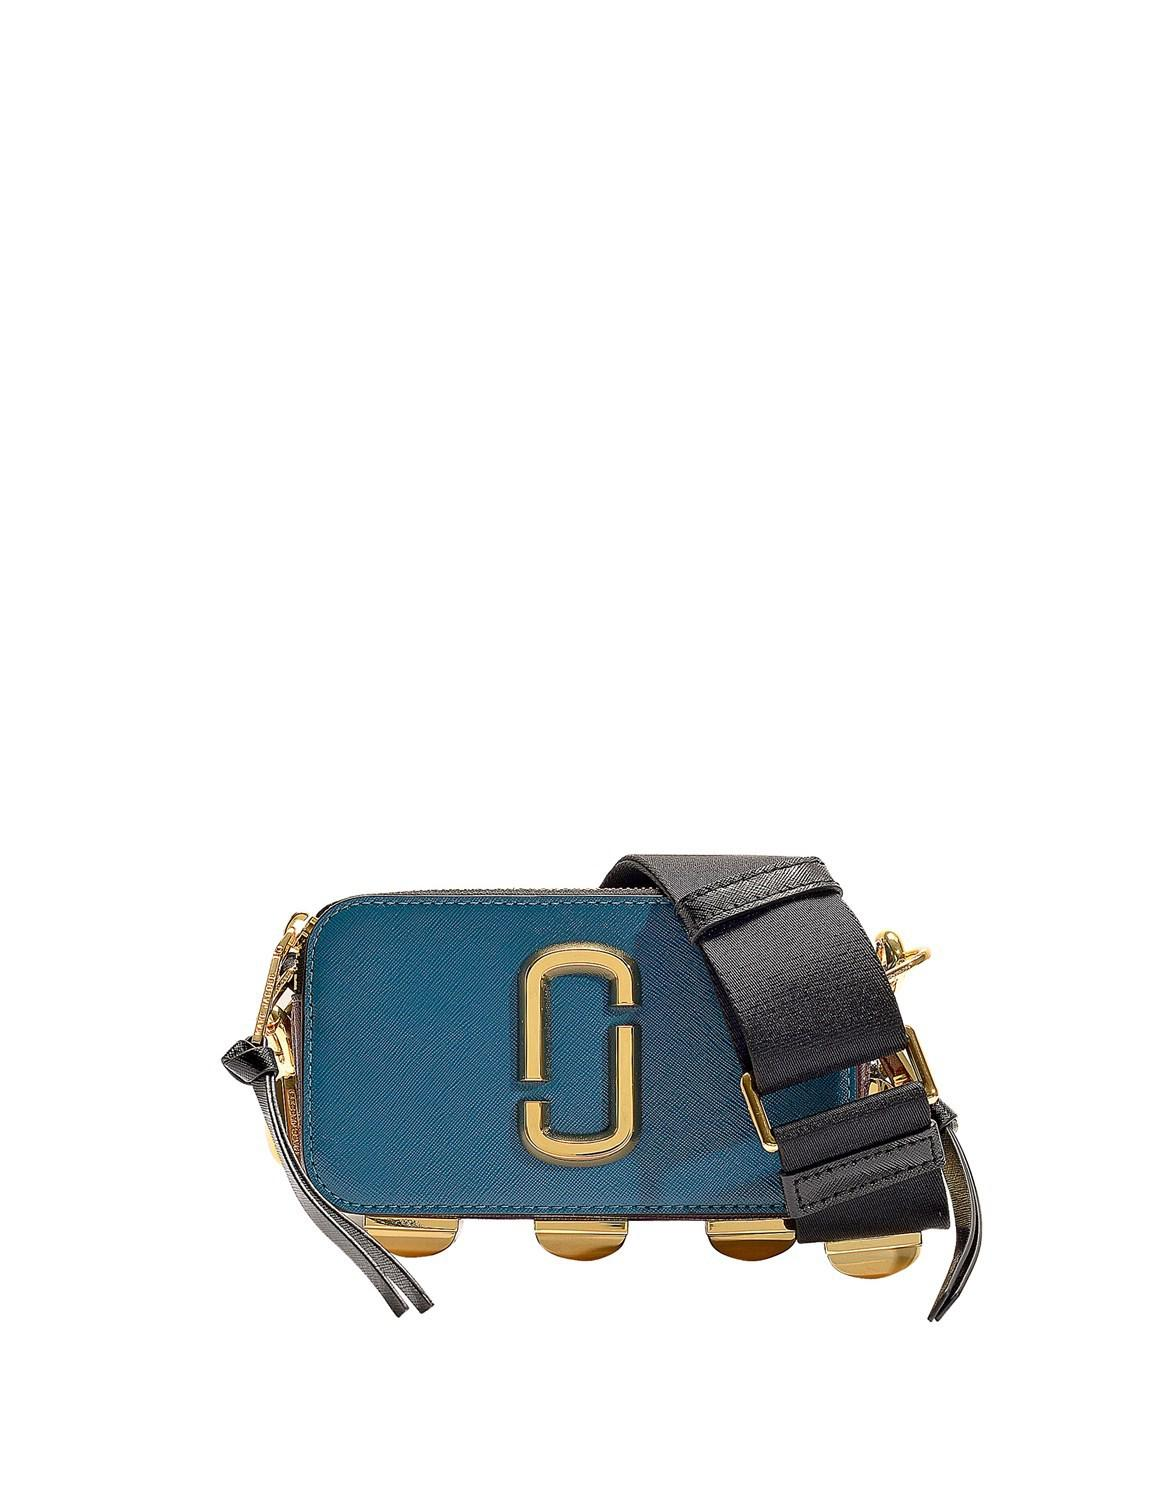 9f714b7c140c marc-jacobs-Blue-Snapshot-Studs-Camera-Bag -In-Multicolor-Petrol-Blue-Polyurethane-Coated-Calfskin.jpeg